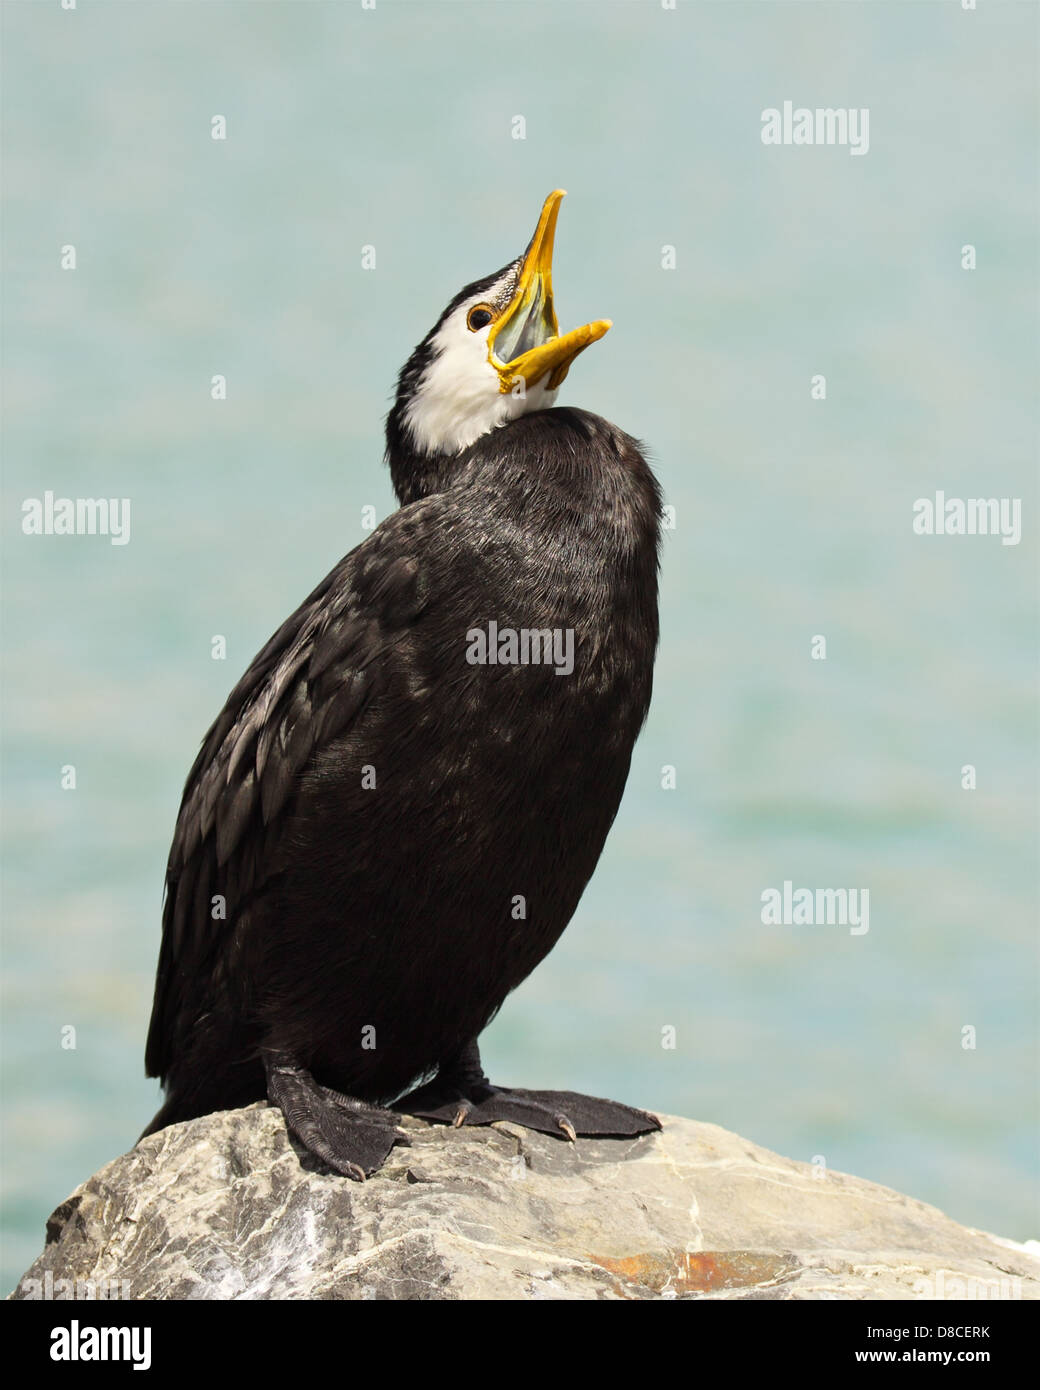 A Little Pied Shag calling out from a rocky perch. - Stock Image